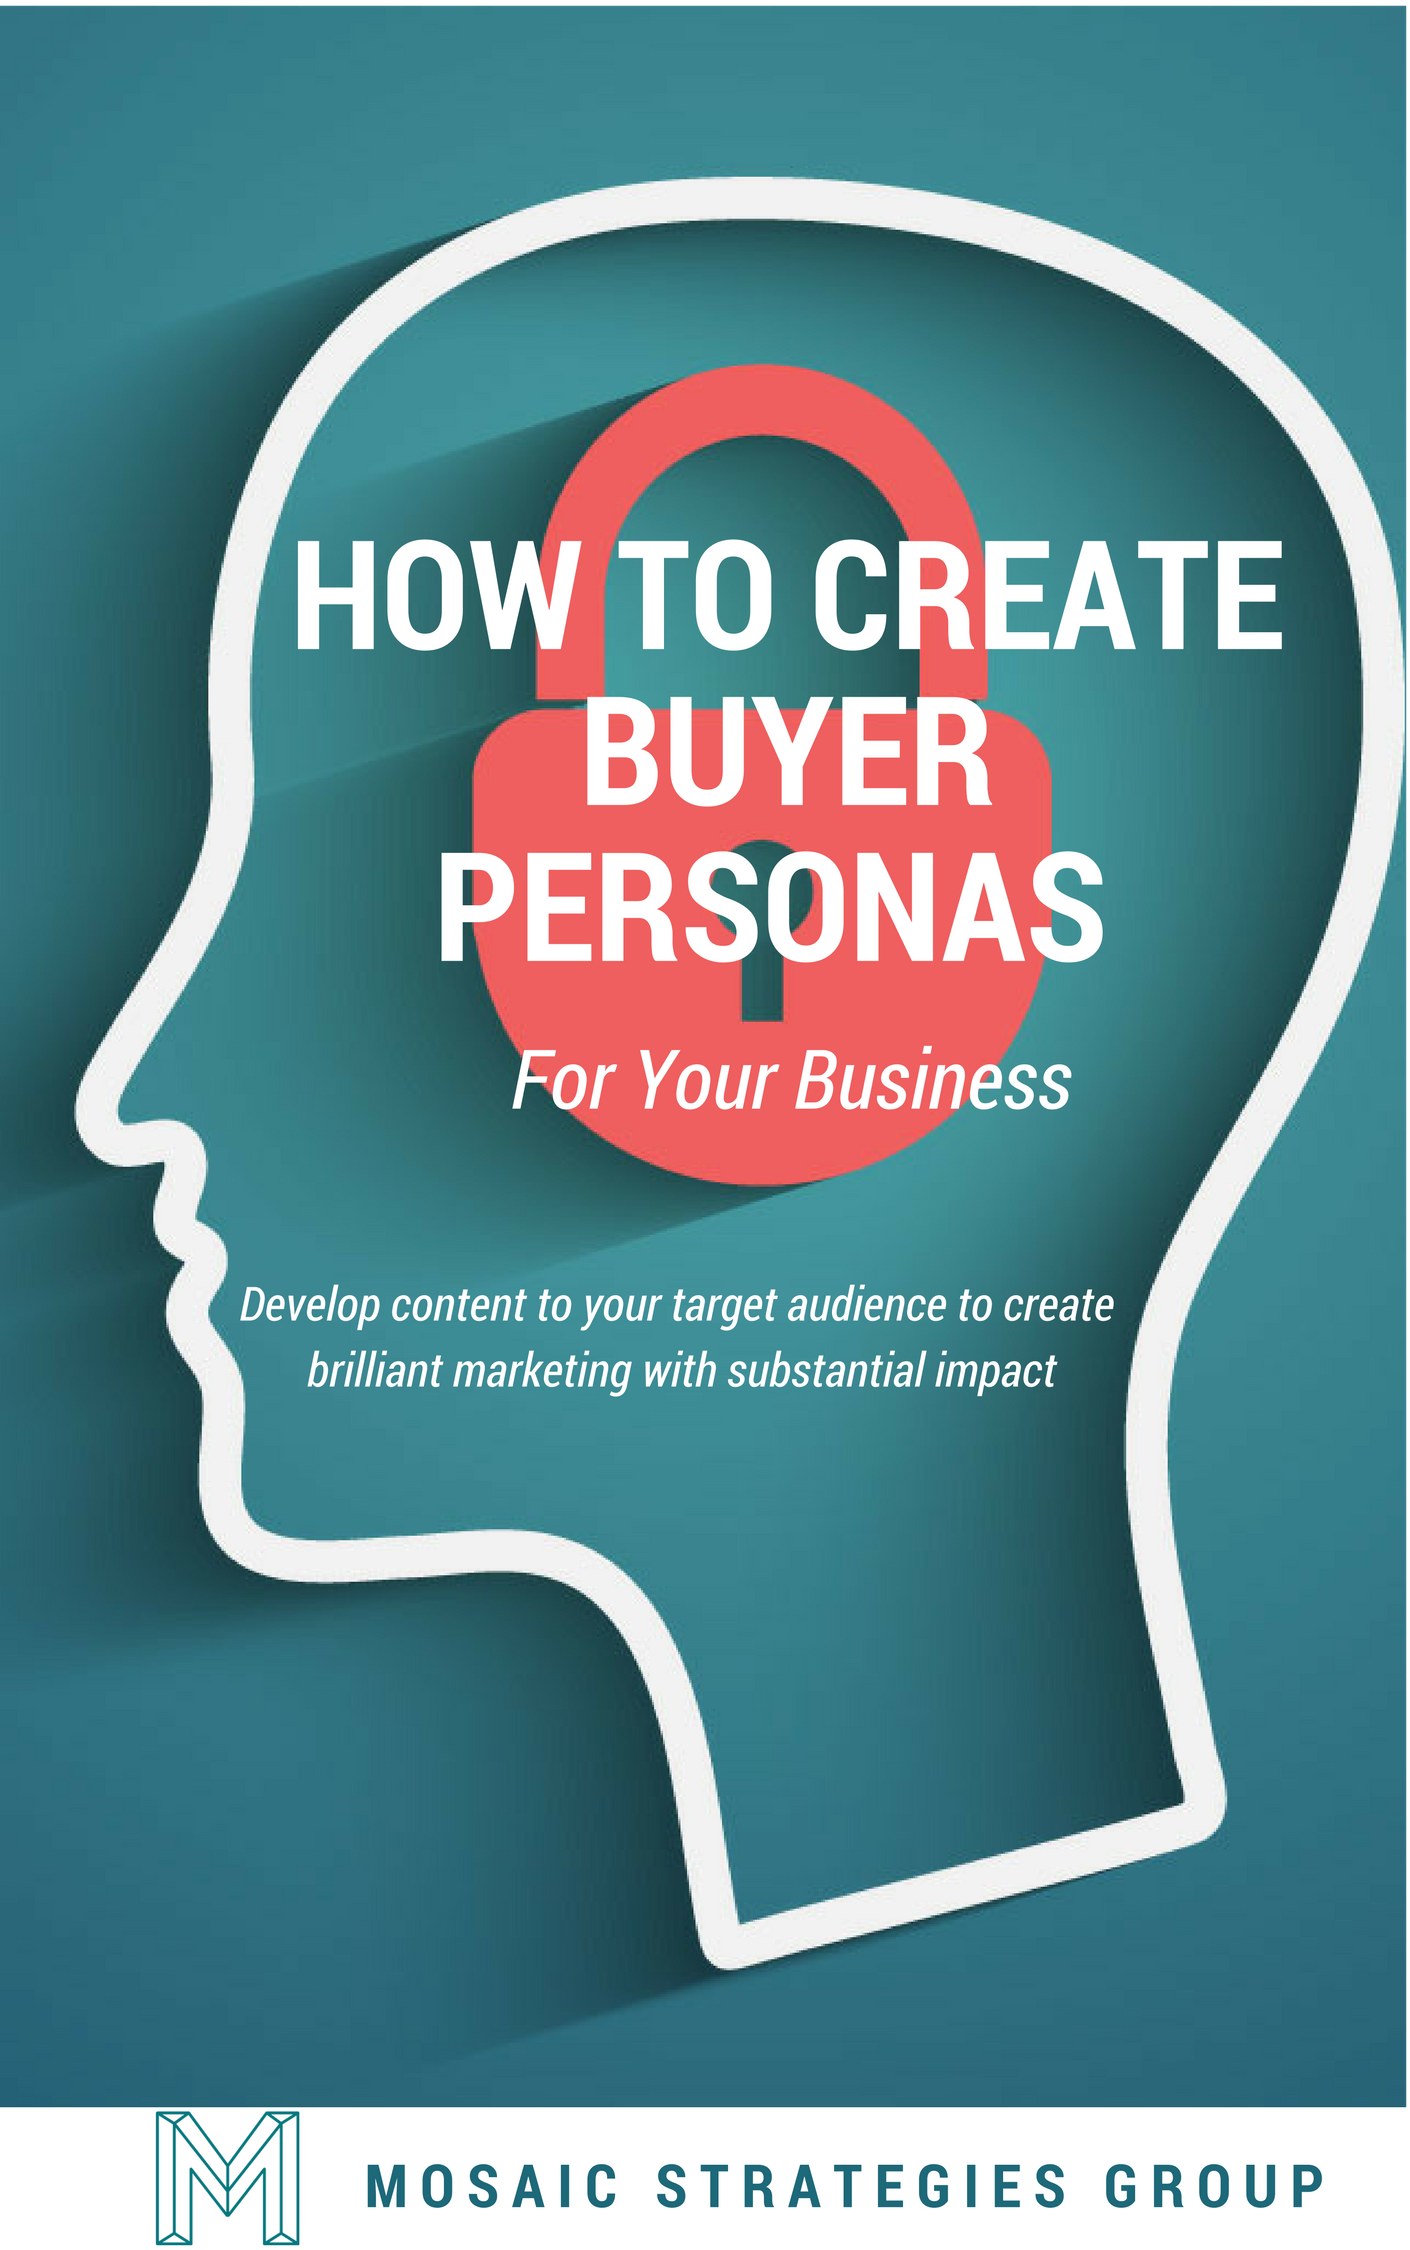 How to create buyer personas ebook cover.png